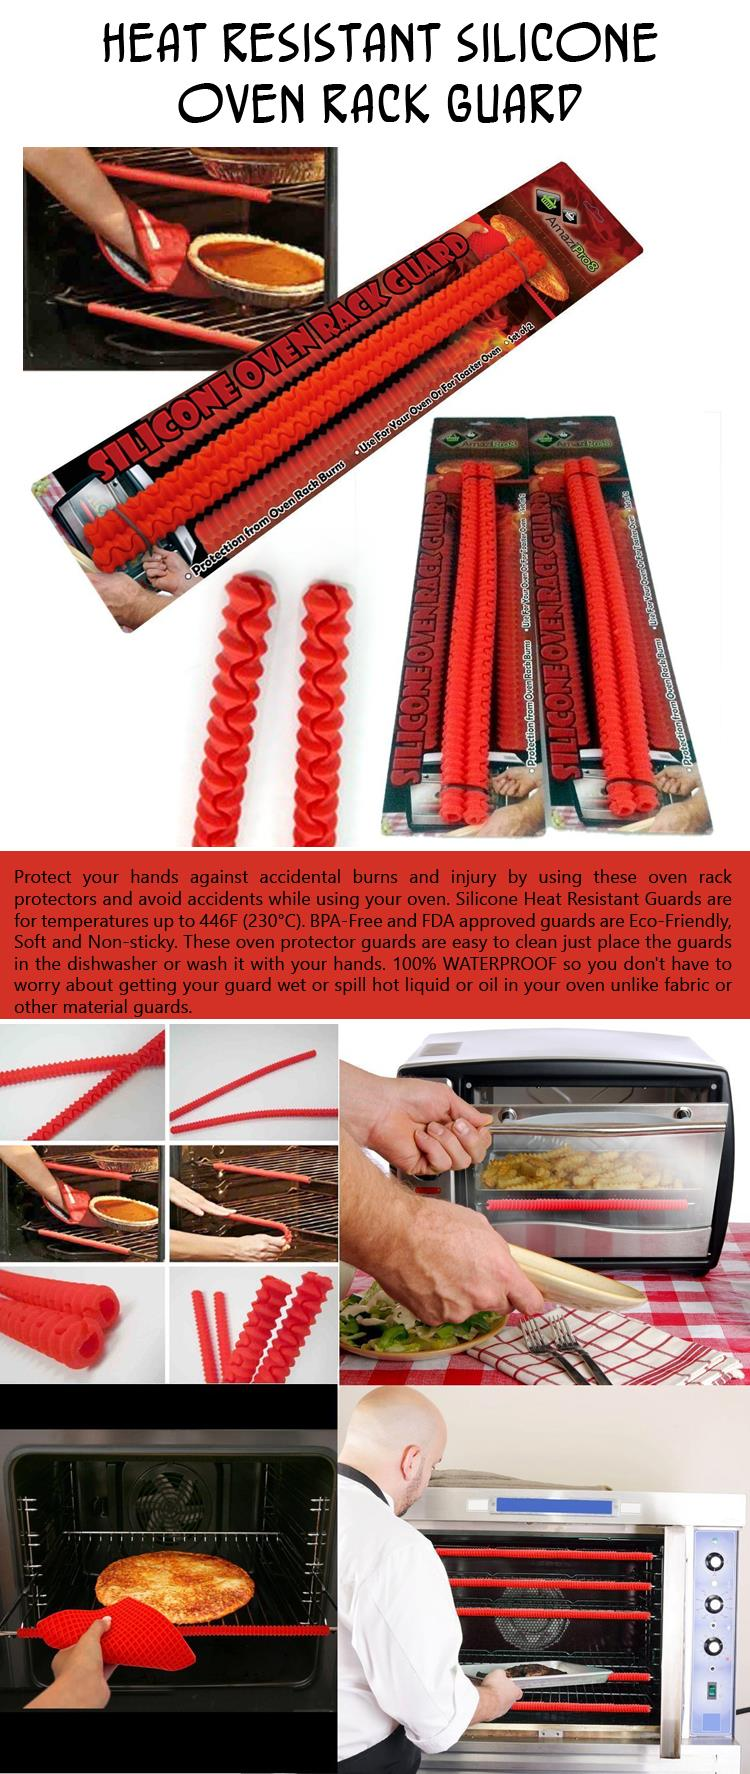 Heat Resistant Silicone Oven Rack Guard